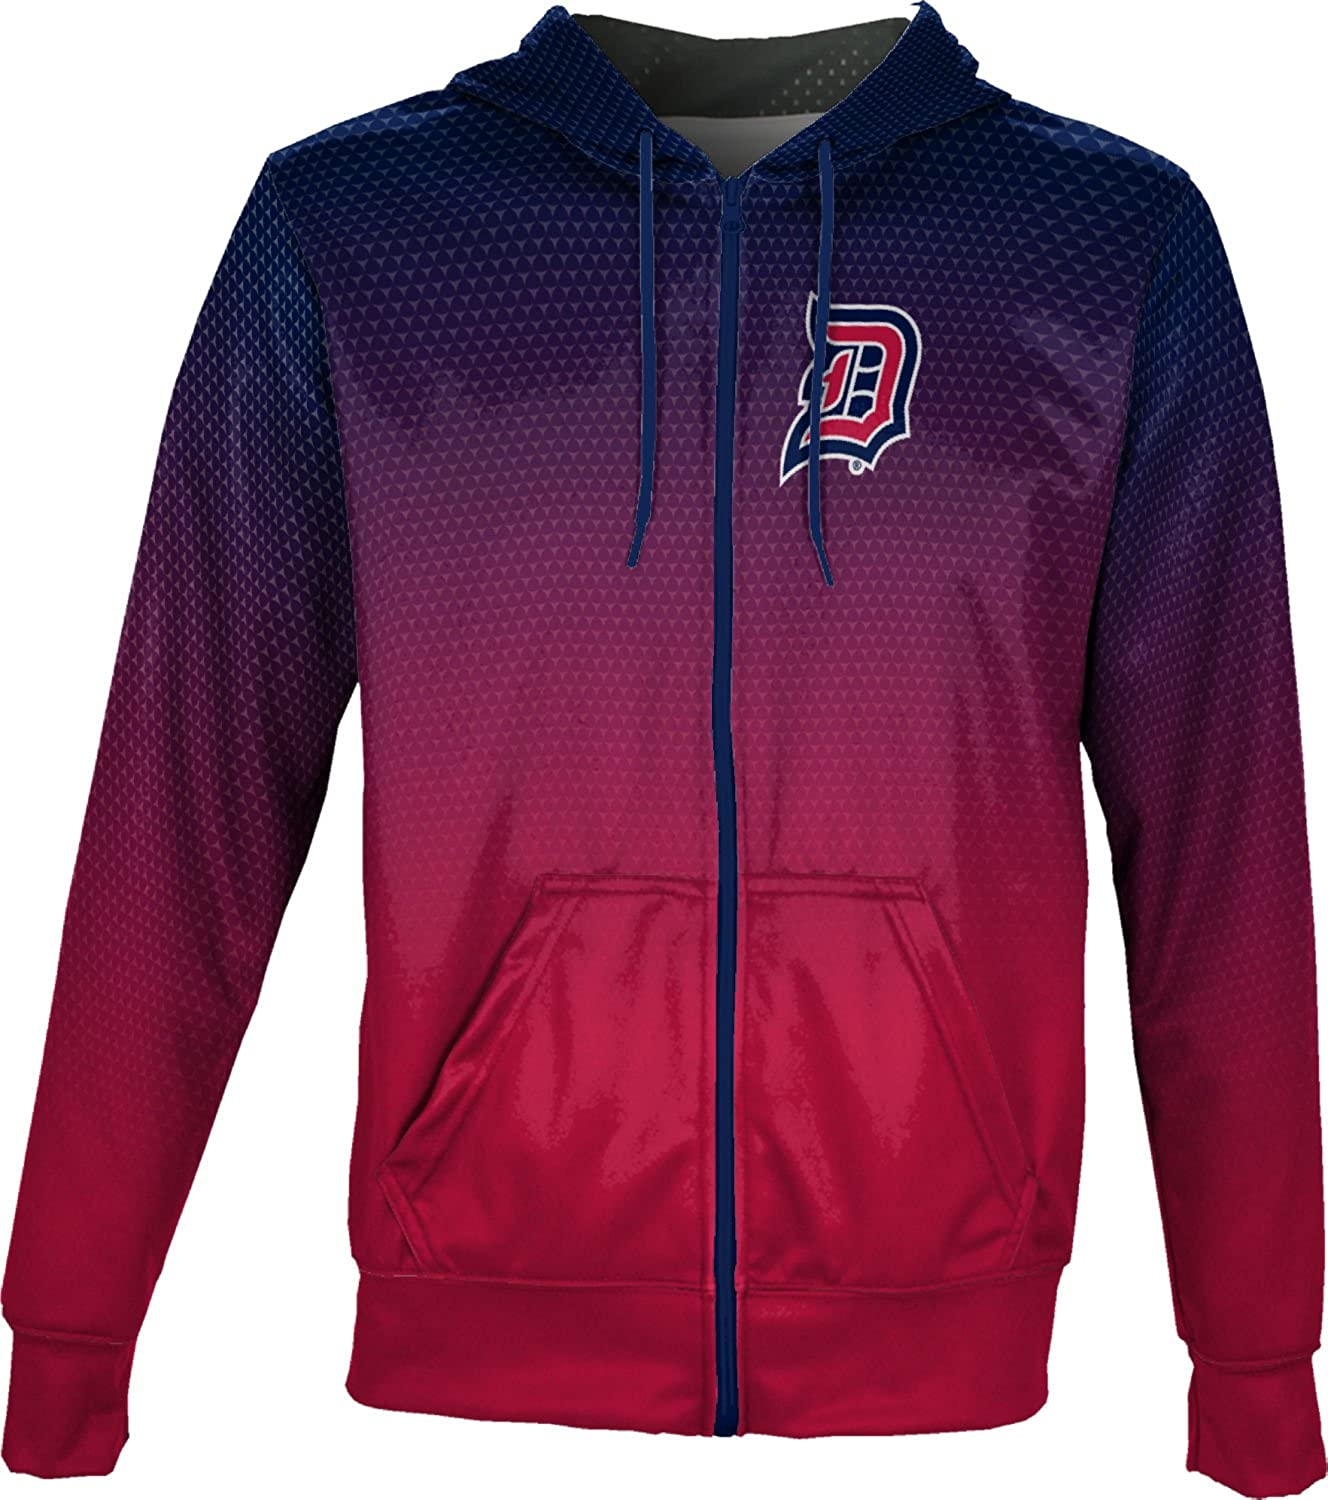 ProSphere Duquesne University Mens Fullzip Hoodie Digital